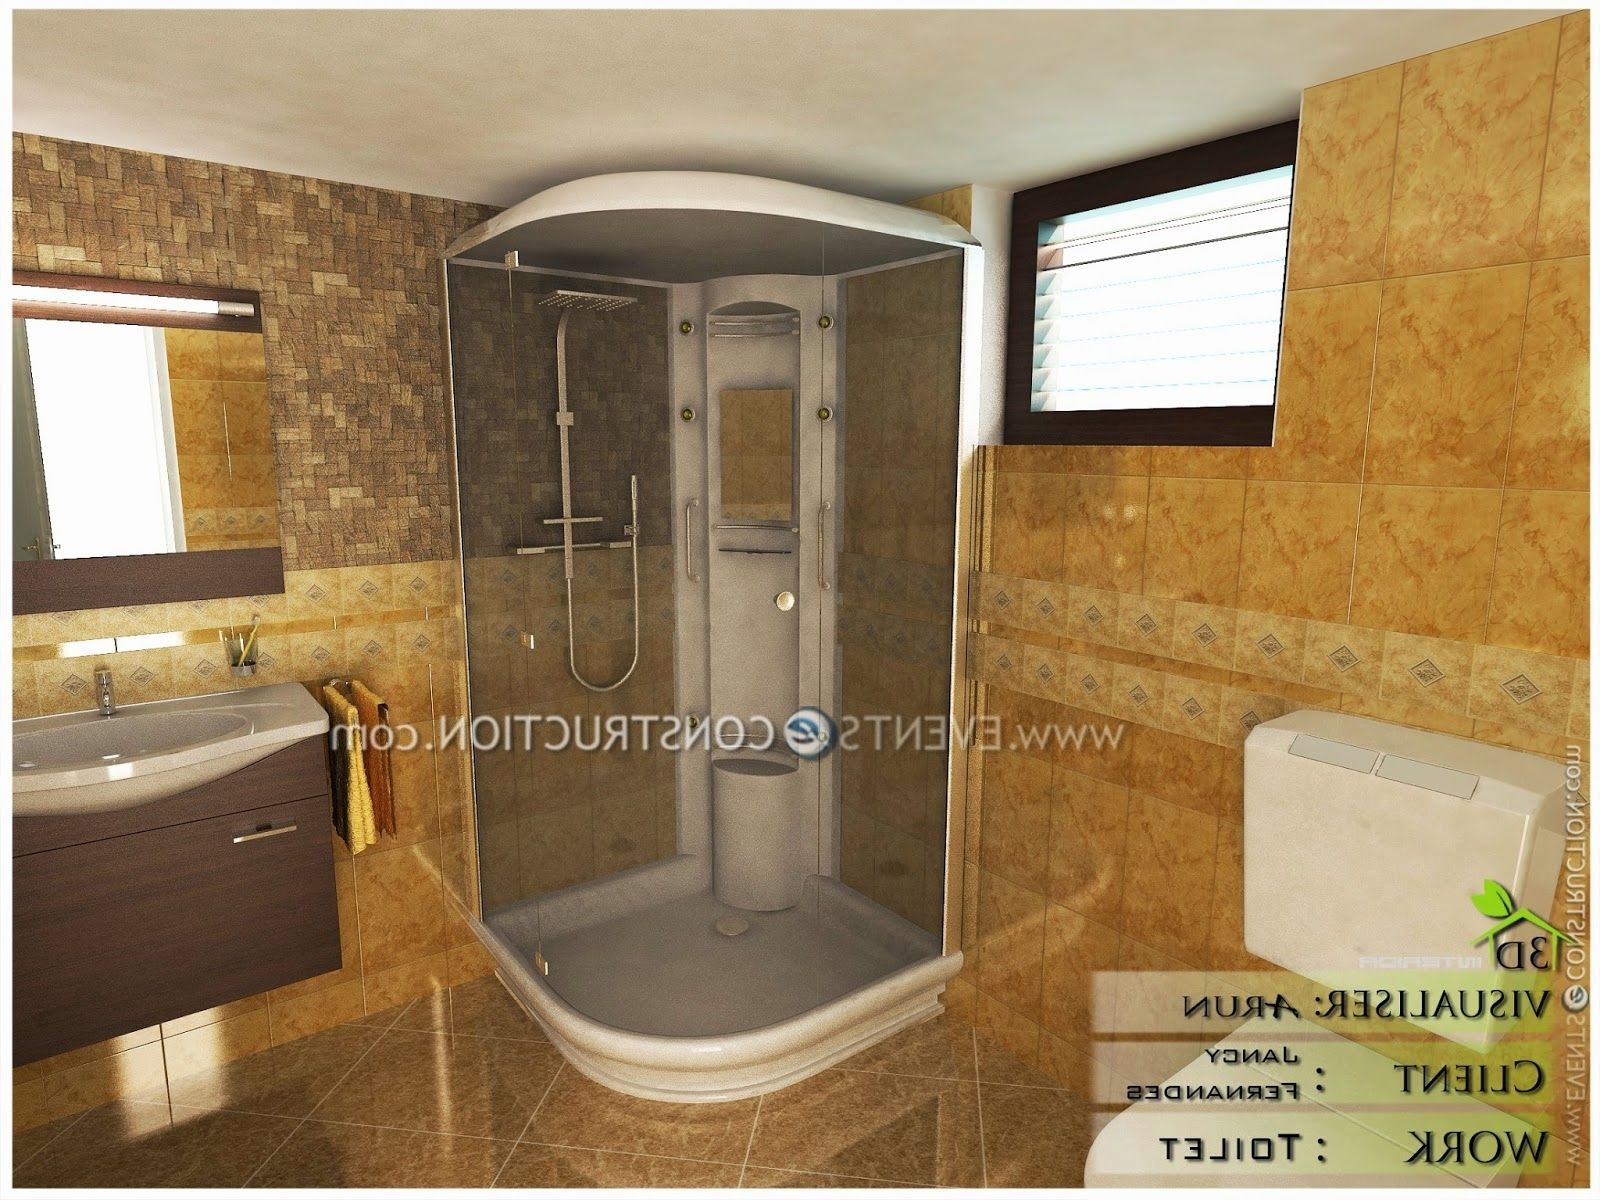 Evens Construction Pvt Ltd: Modern Kerala Bathroom Design Kerala House Bathroom Designs